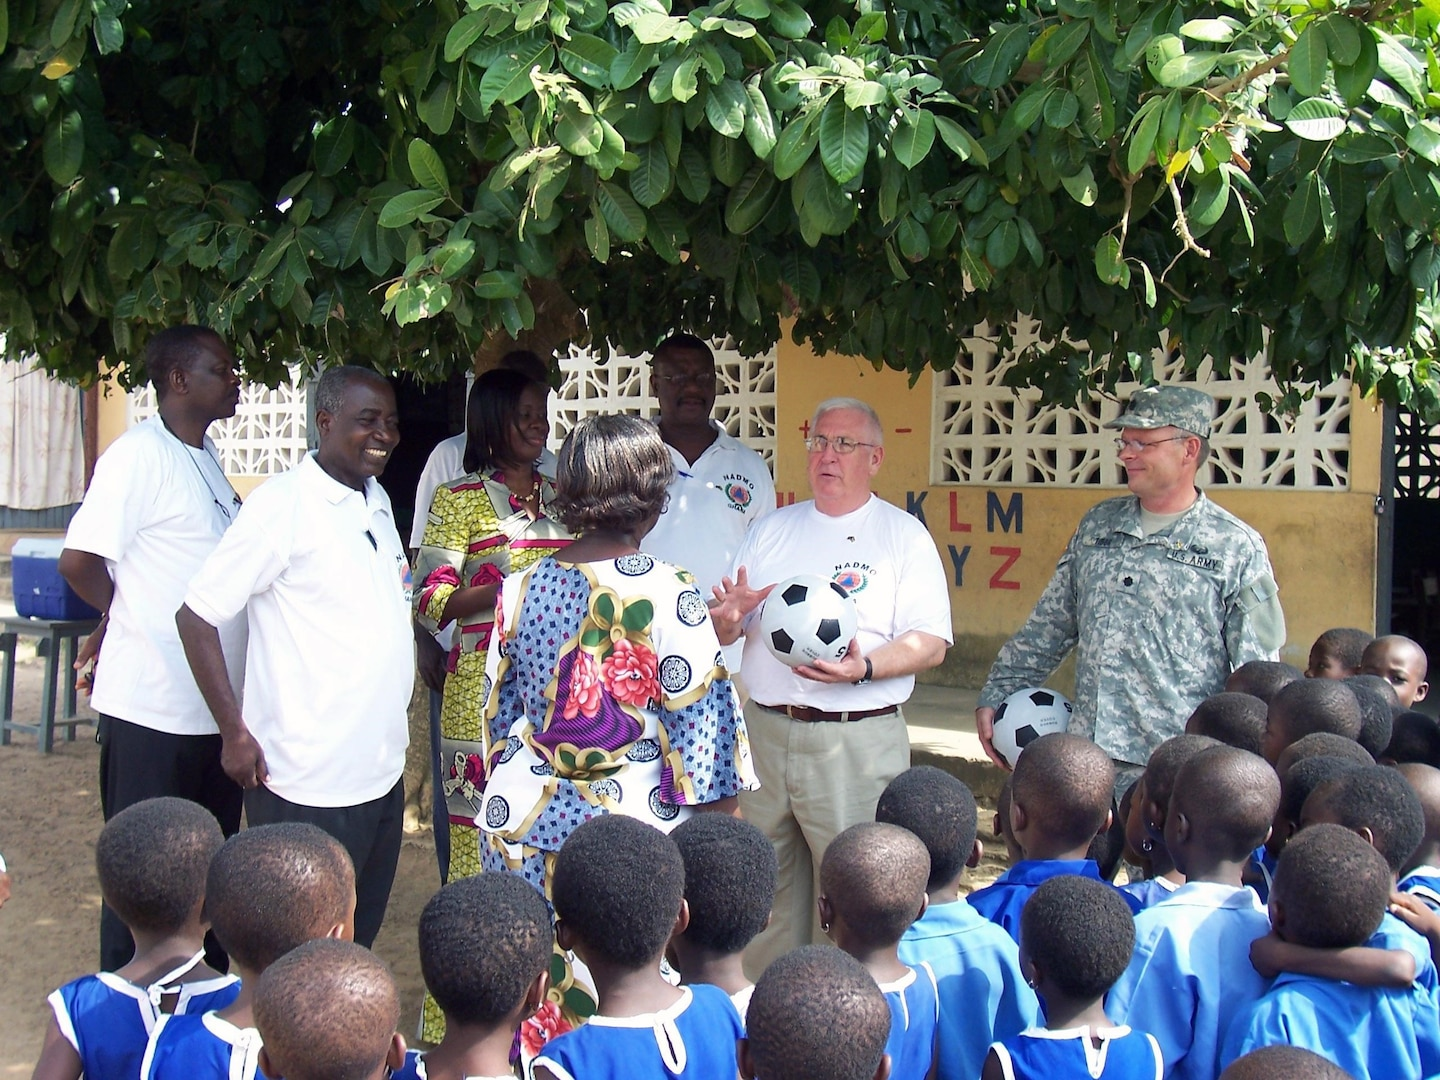 Doug Friez, a project advisor with the State Partnership Program, presents a soccer ball to a teacher at a school in Ghana, Africa. Friez and Lt. Col. Mark Tibor (right) were in the country to provide a Disaster Management Workshop. At left are employees with Ghana's National Disaster Management Organization, or NADMO, who participated in the workshop.